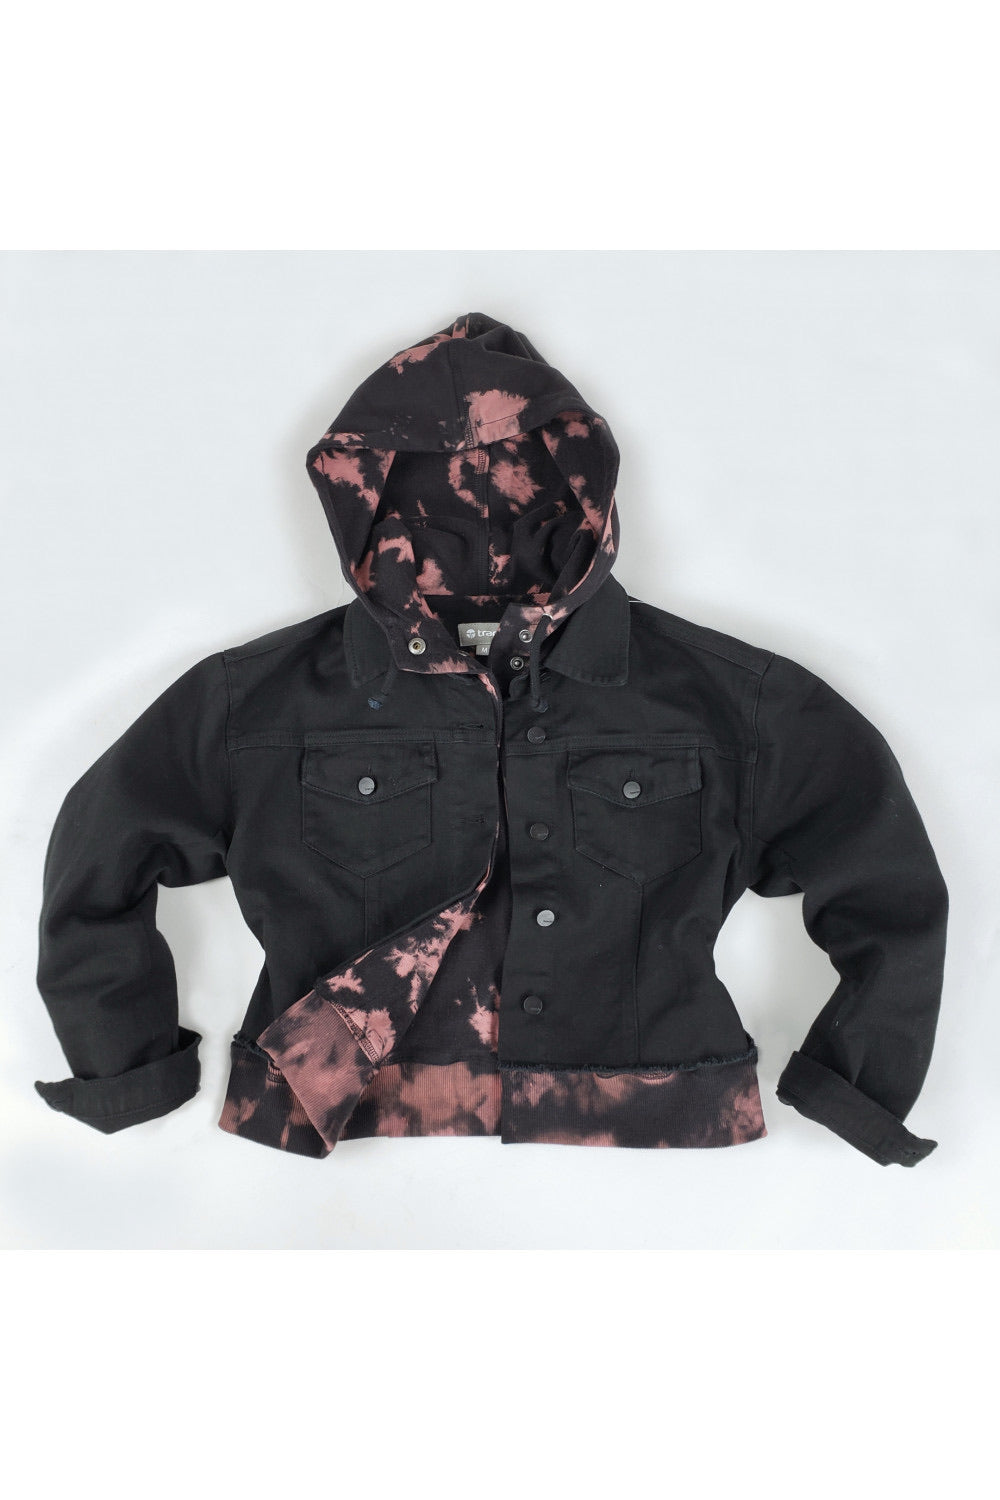 Tractr - TIE DYE PRINT SWEATER WITH BLACK DENIM JACKET